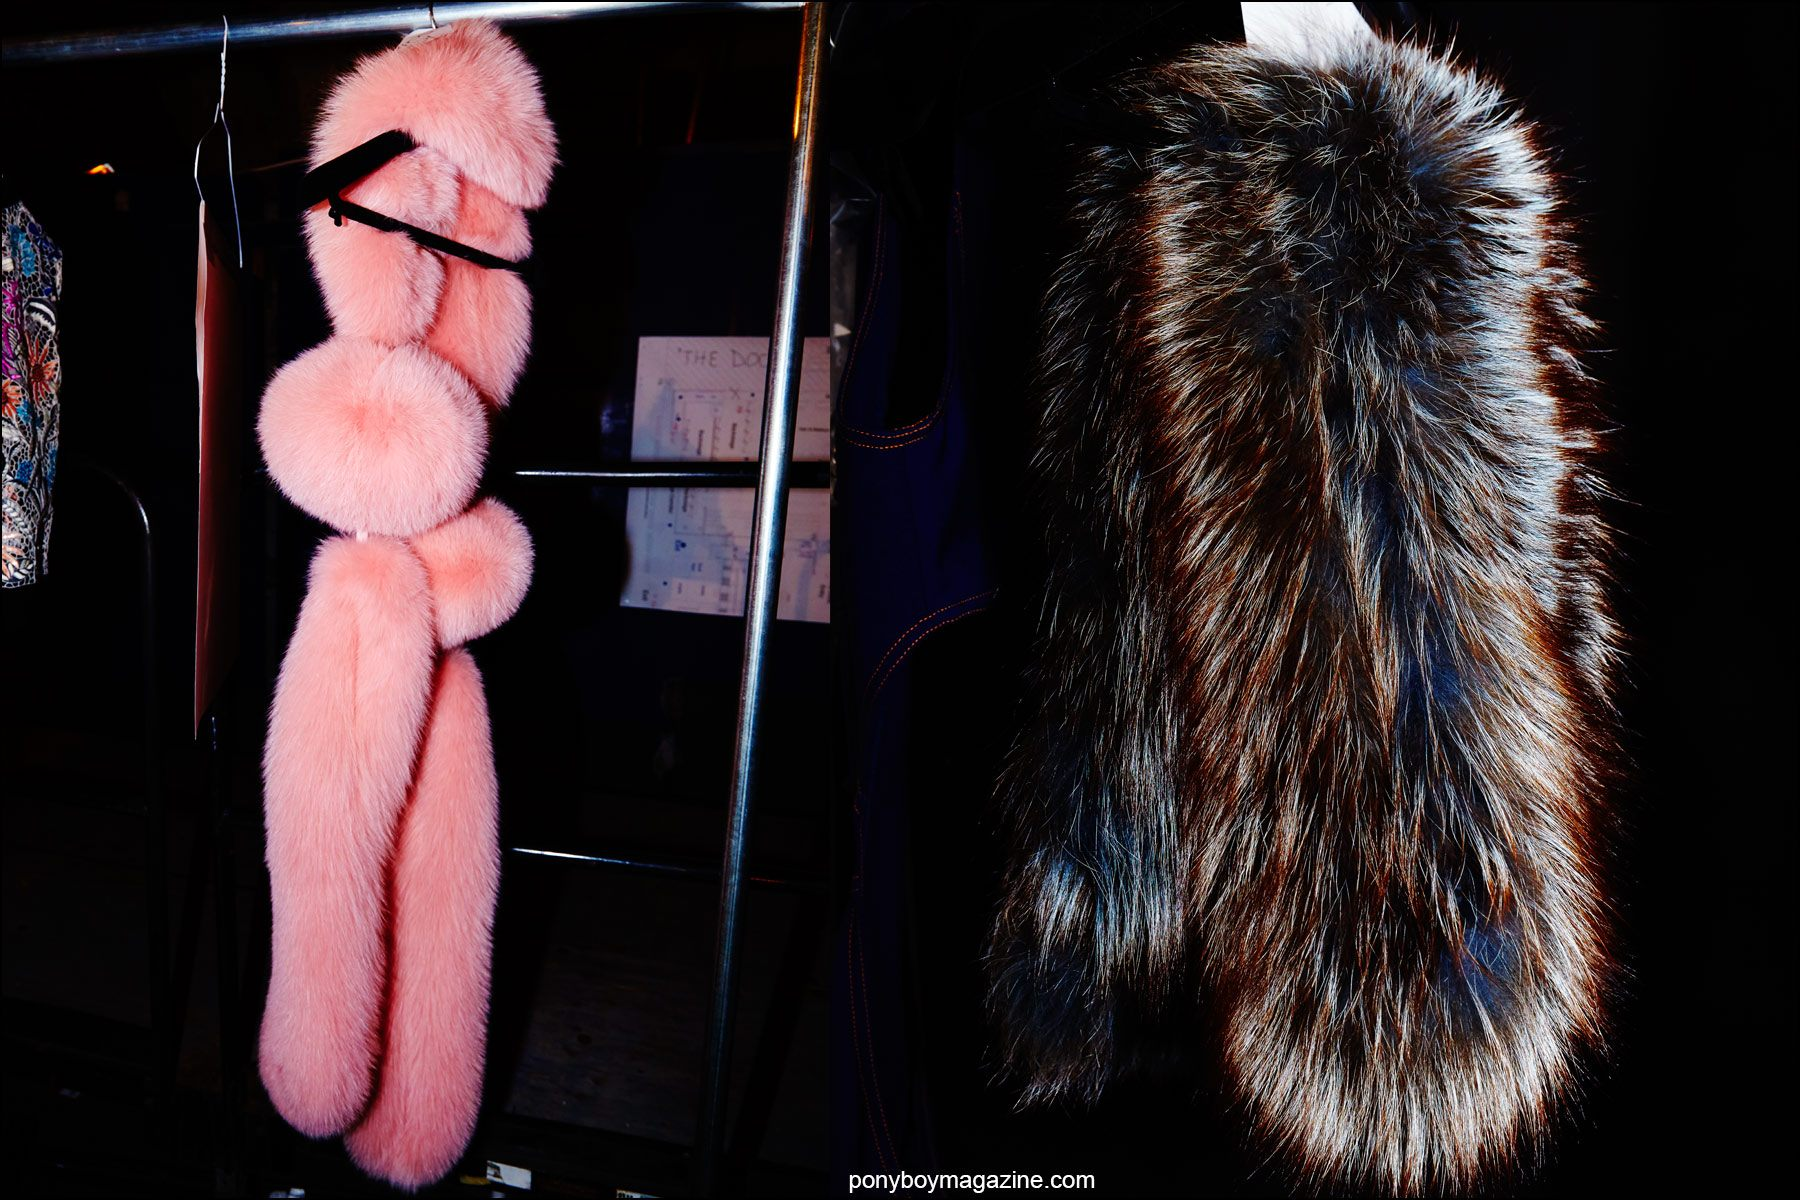 Detail shots of furs from the Georgine Spring/Summer 2016 womenswear collection. Photography by Alexander Thompson for Ponyboy magazine NY.